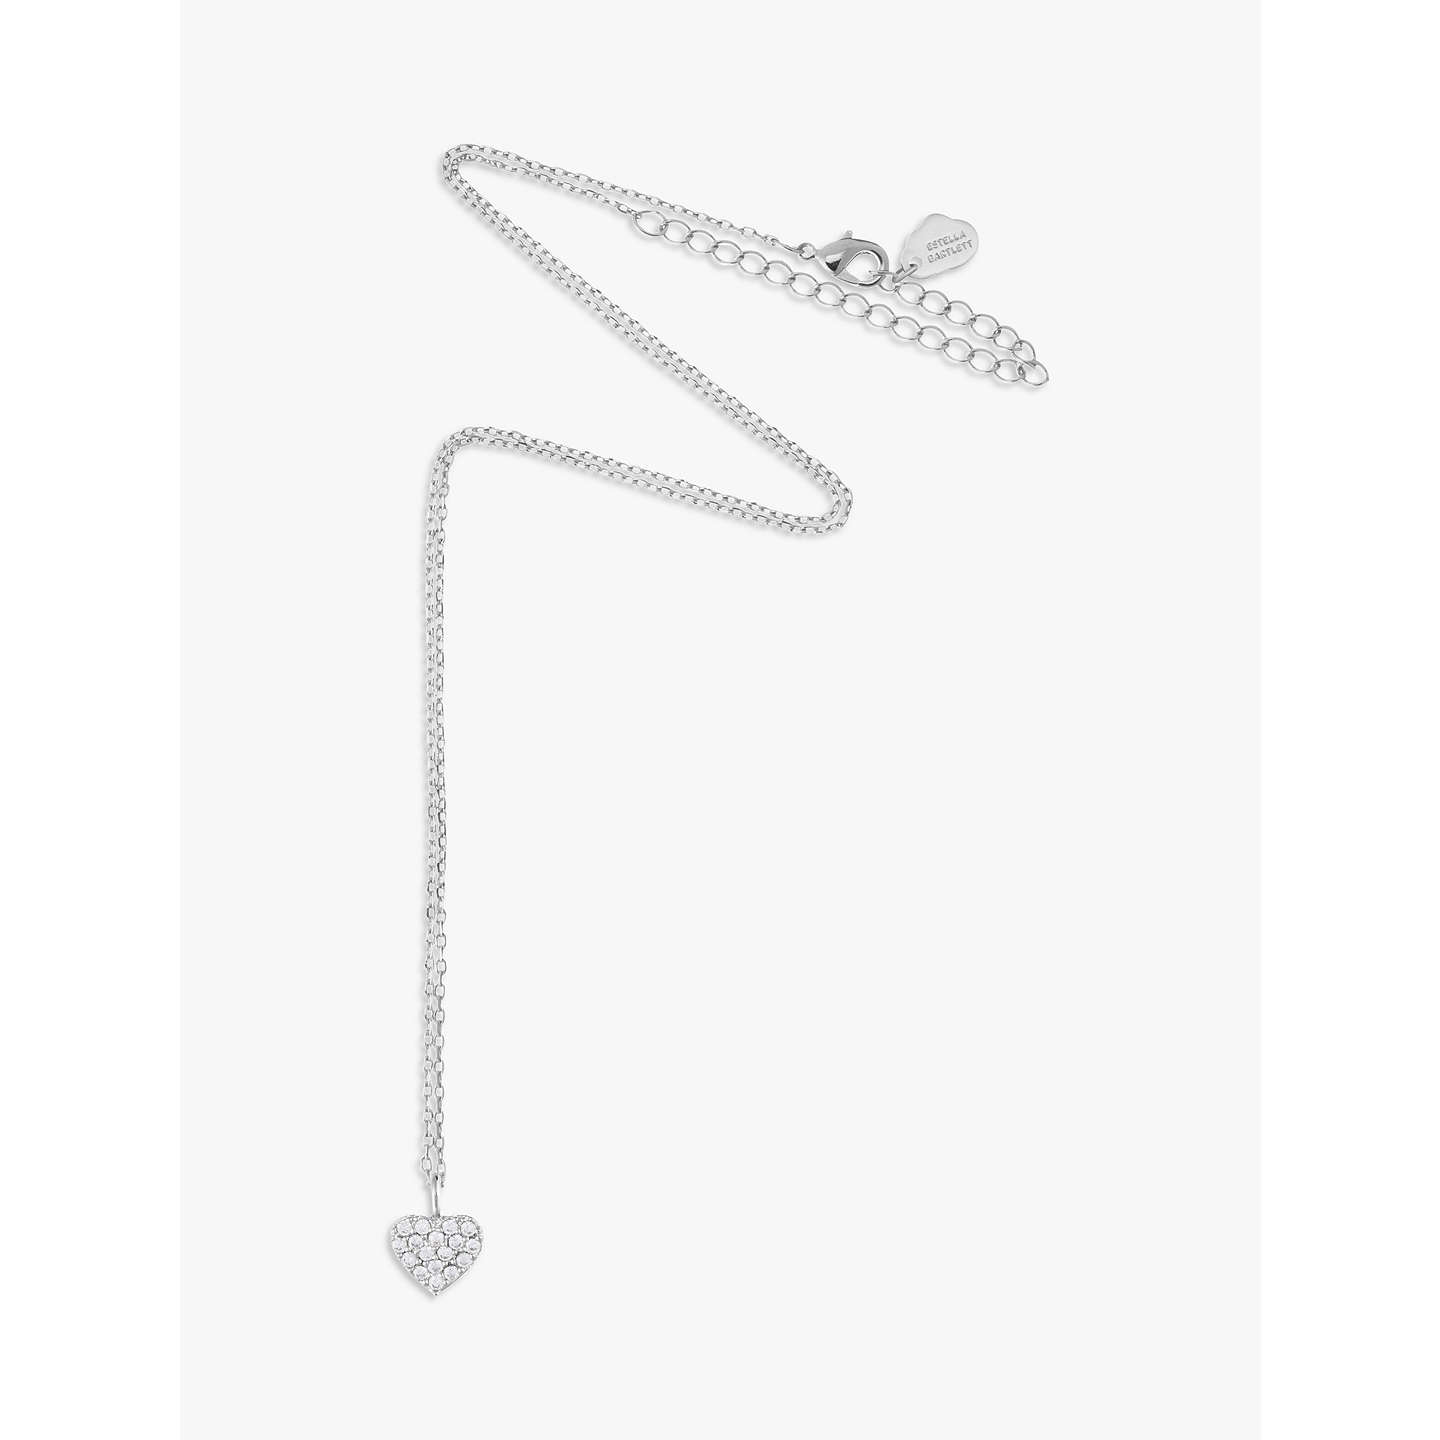 BuyEstella Bartlett Diamanté Sparkle Heart Pendant Necklace, Silver Online at johnlewis.com